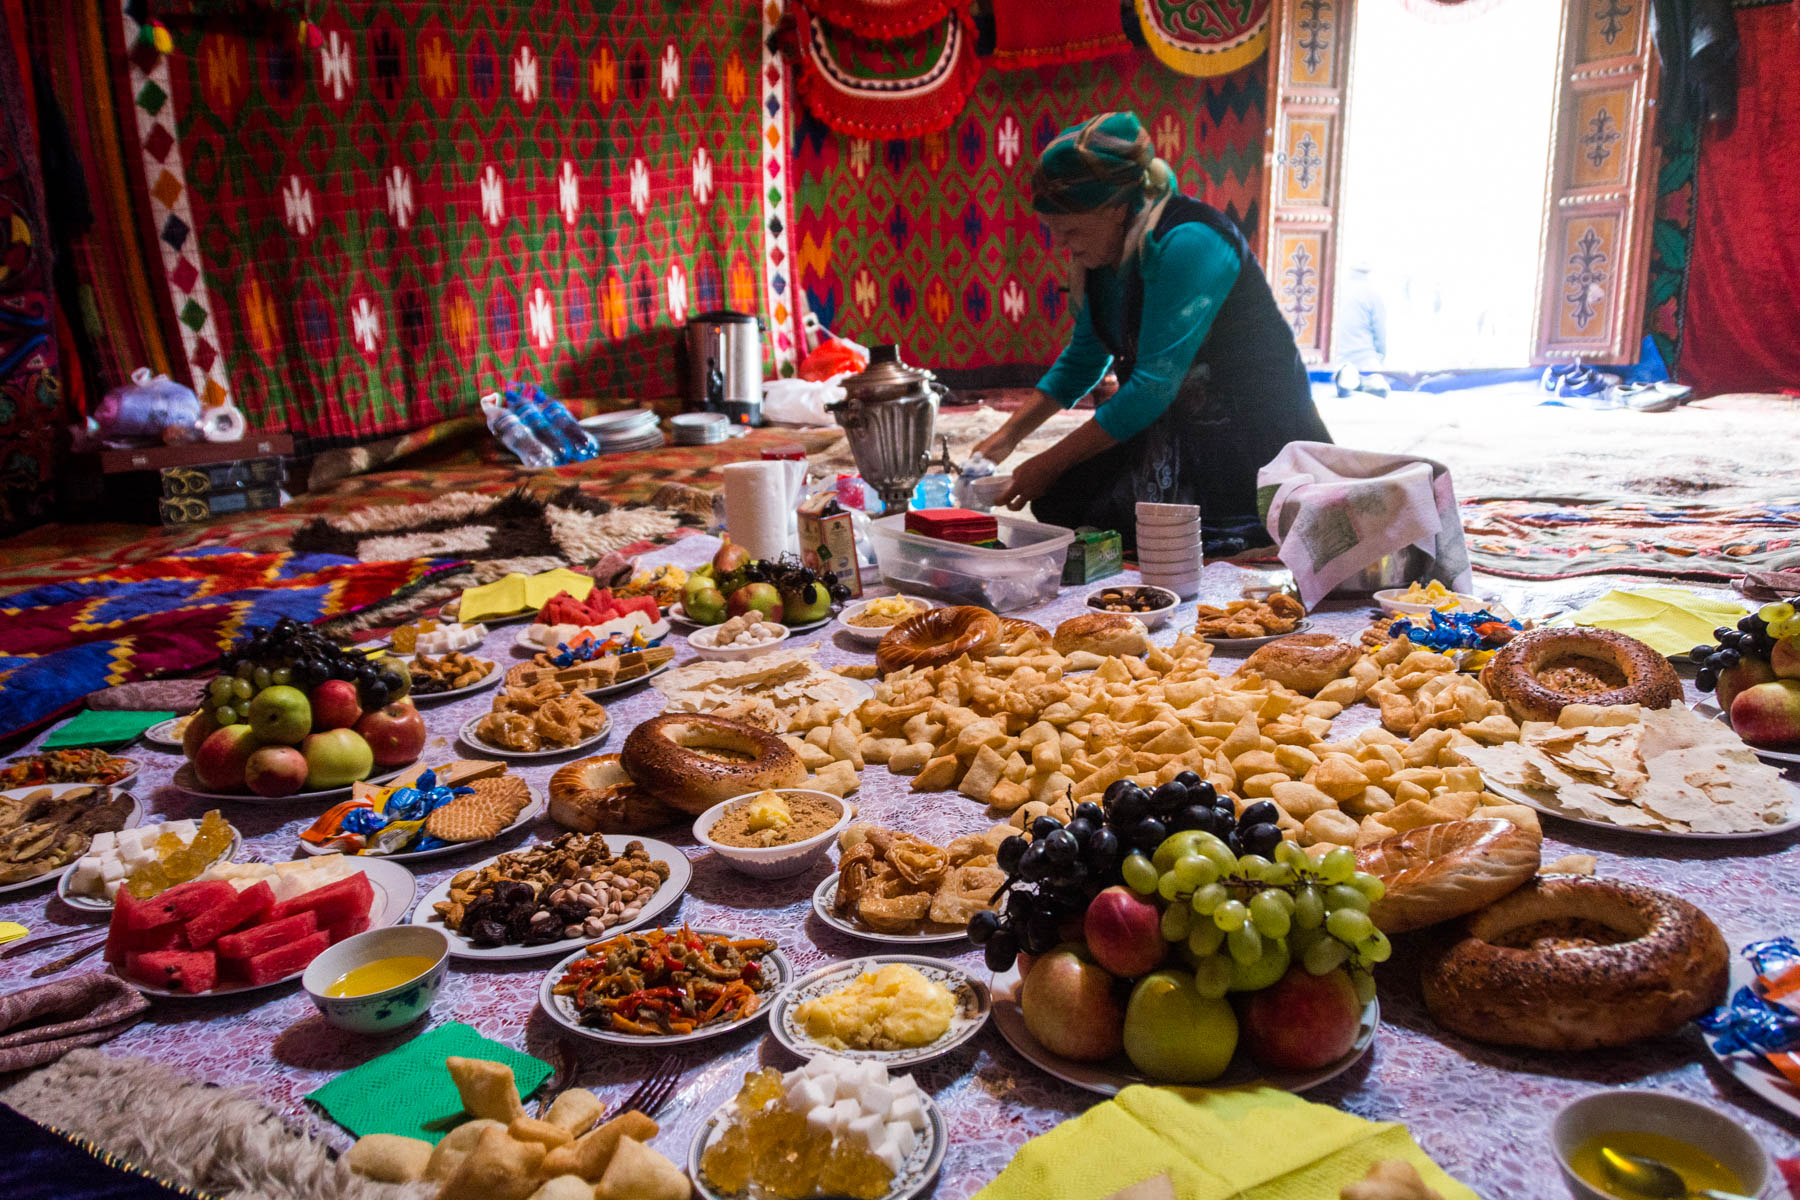 Free nomadic food at the 2016 World Nomad Games - Are the 2018 World Nomad Games worth the trip? - Lost With Purpose